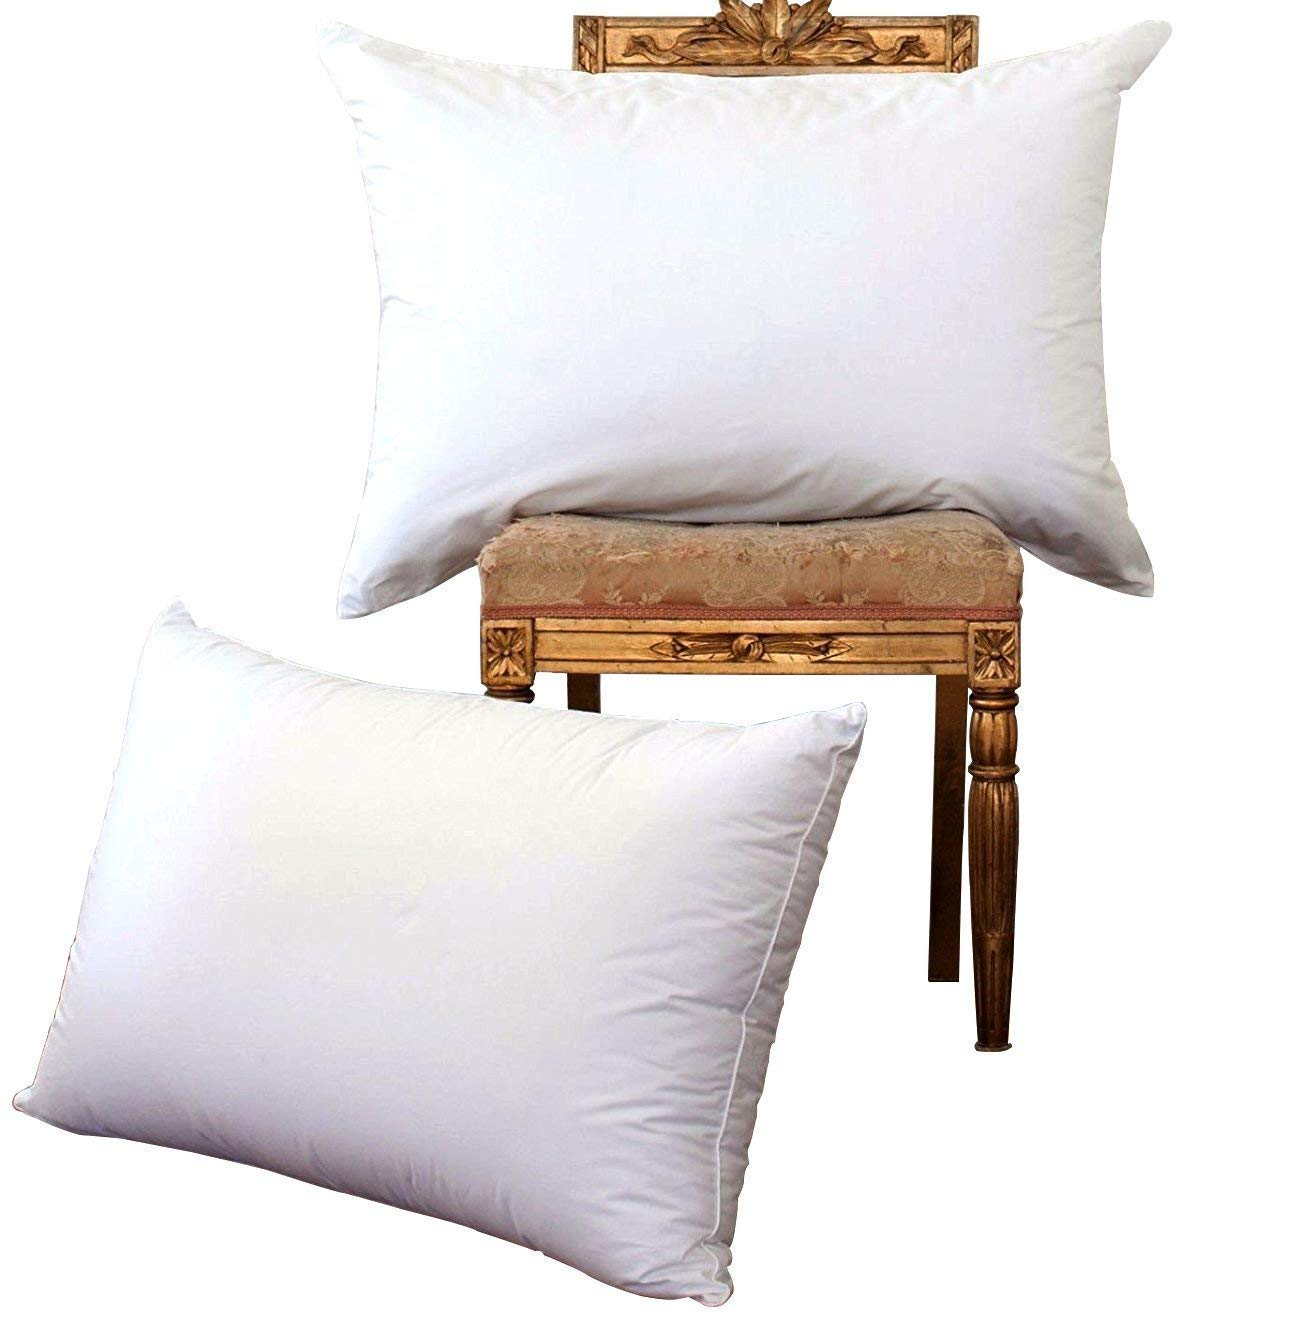 NP luxury White Goose down pillow(2-pack,Queen,Soft) 100% Egyptian Cotton Cover,1200 Thread Count,Bed pillows for Sleeping,Hypoallergenic